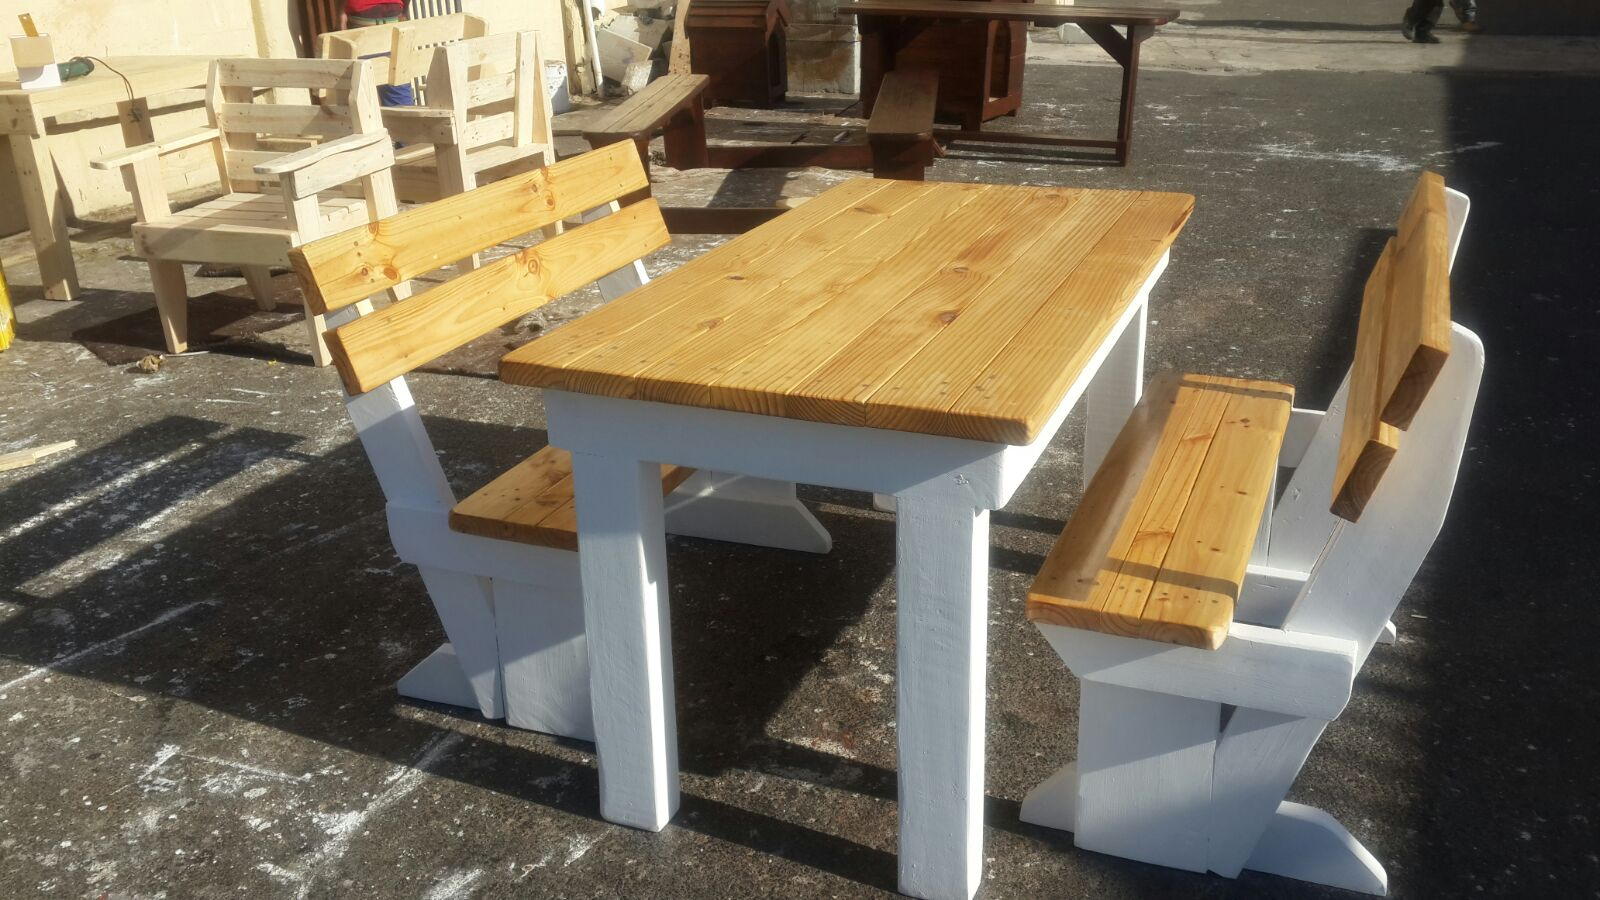 Garden Benches, Outdoor Benches, Outdoor Furniture, Patio Benches, Outdoor Benches, Wooden ...